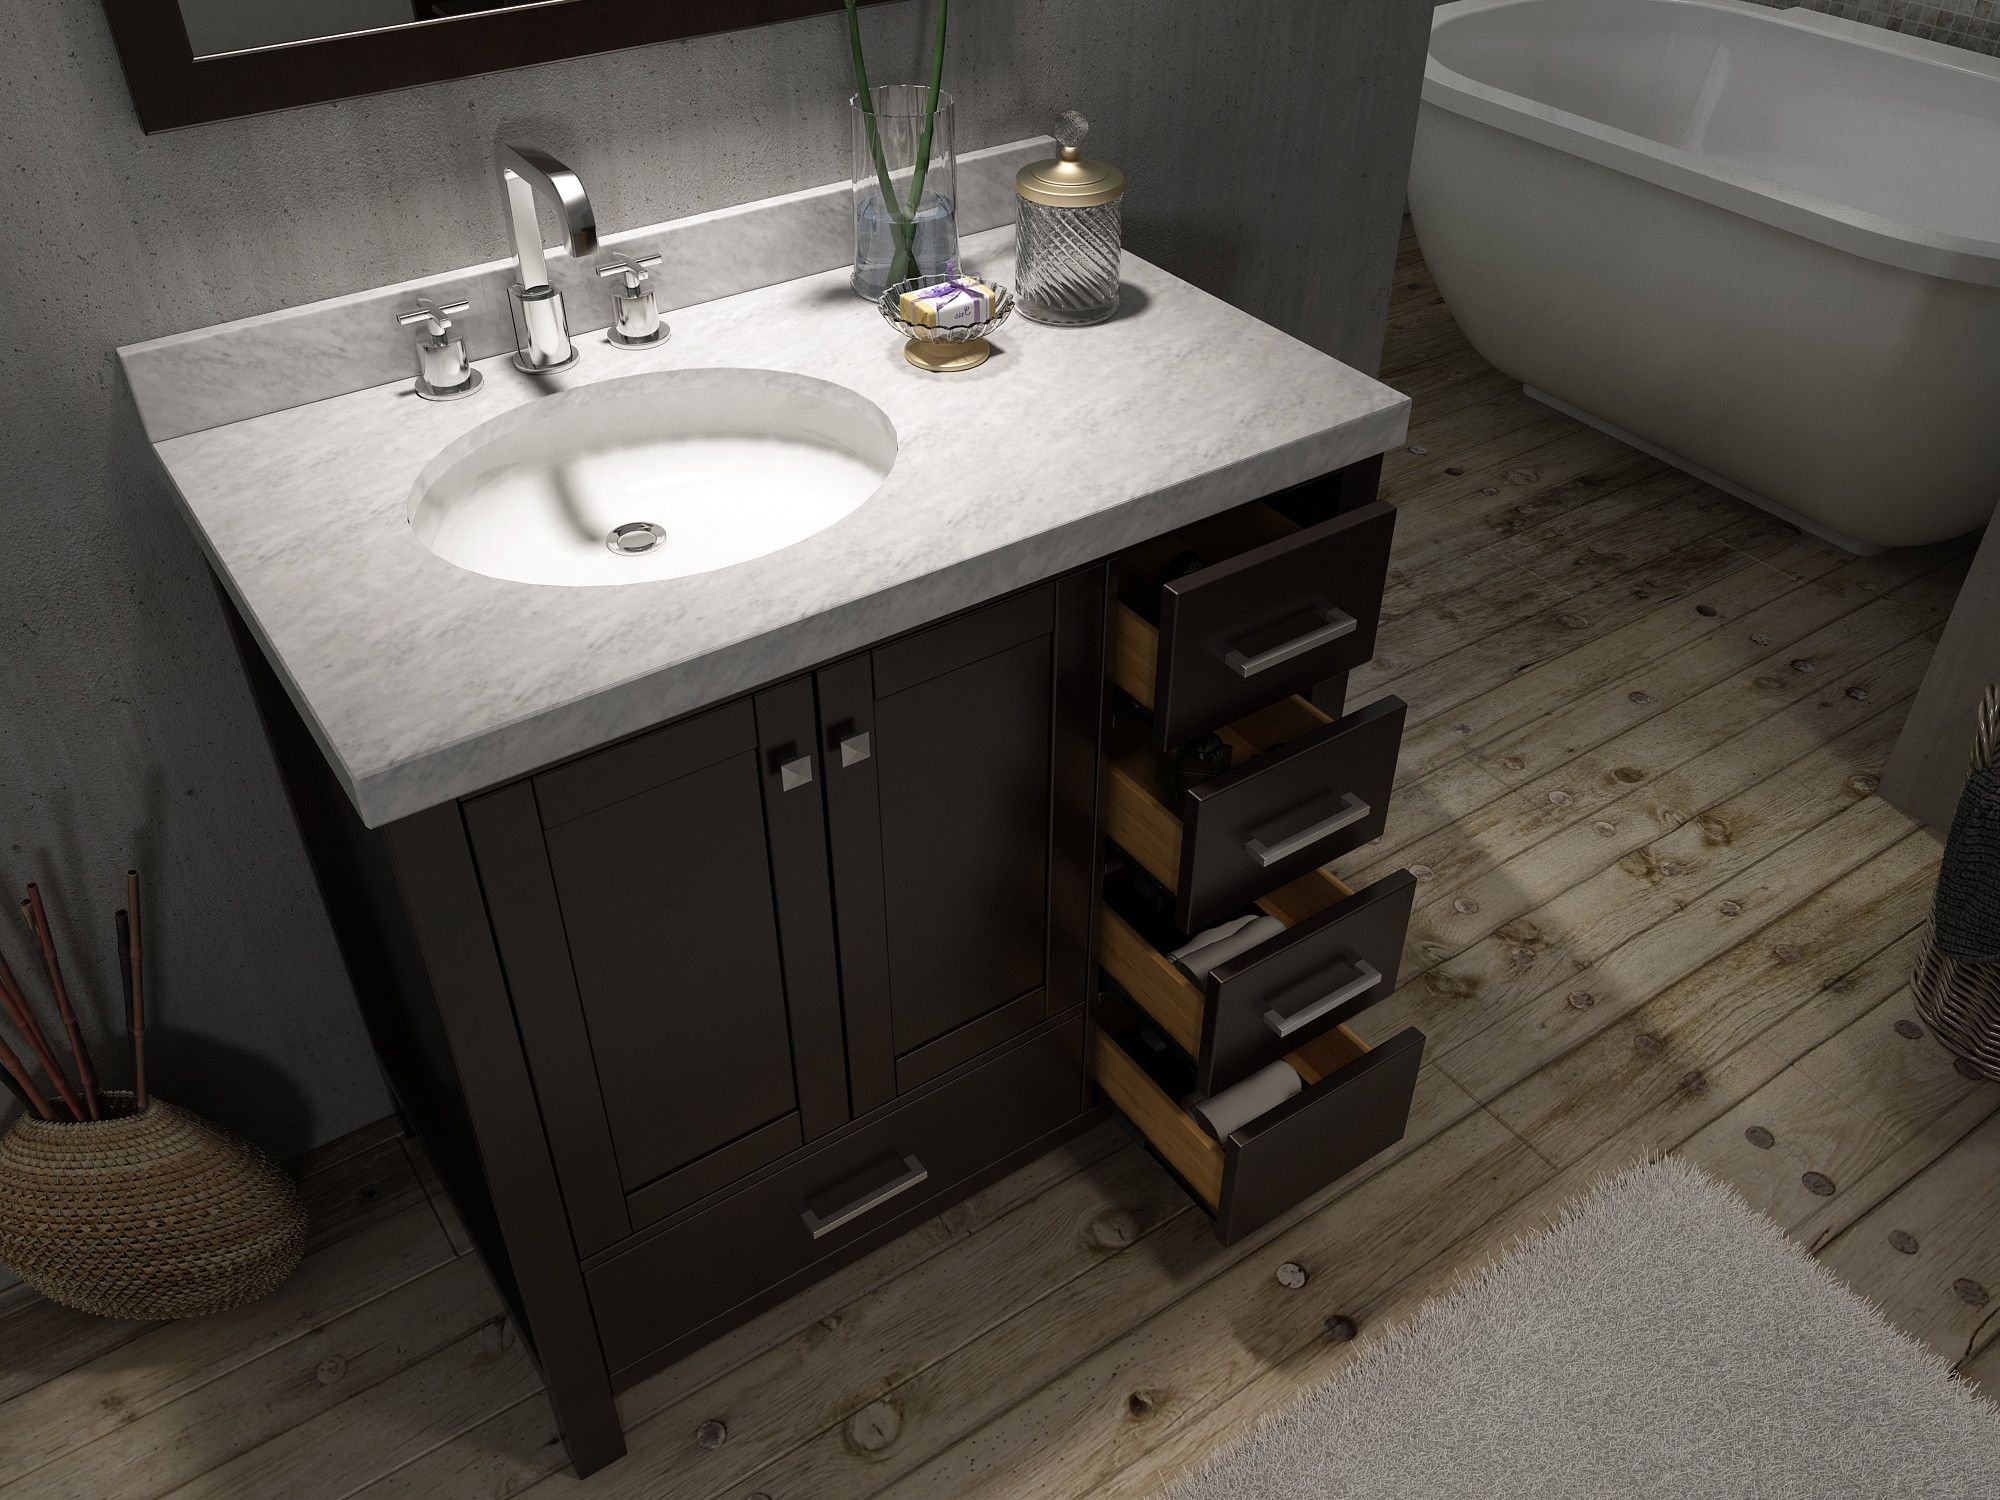 48 Bathroom Vanity With Left fset Sink